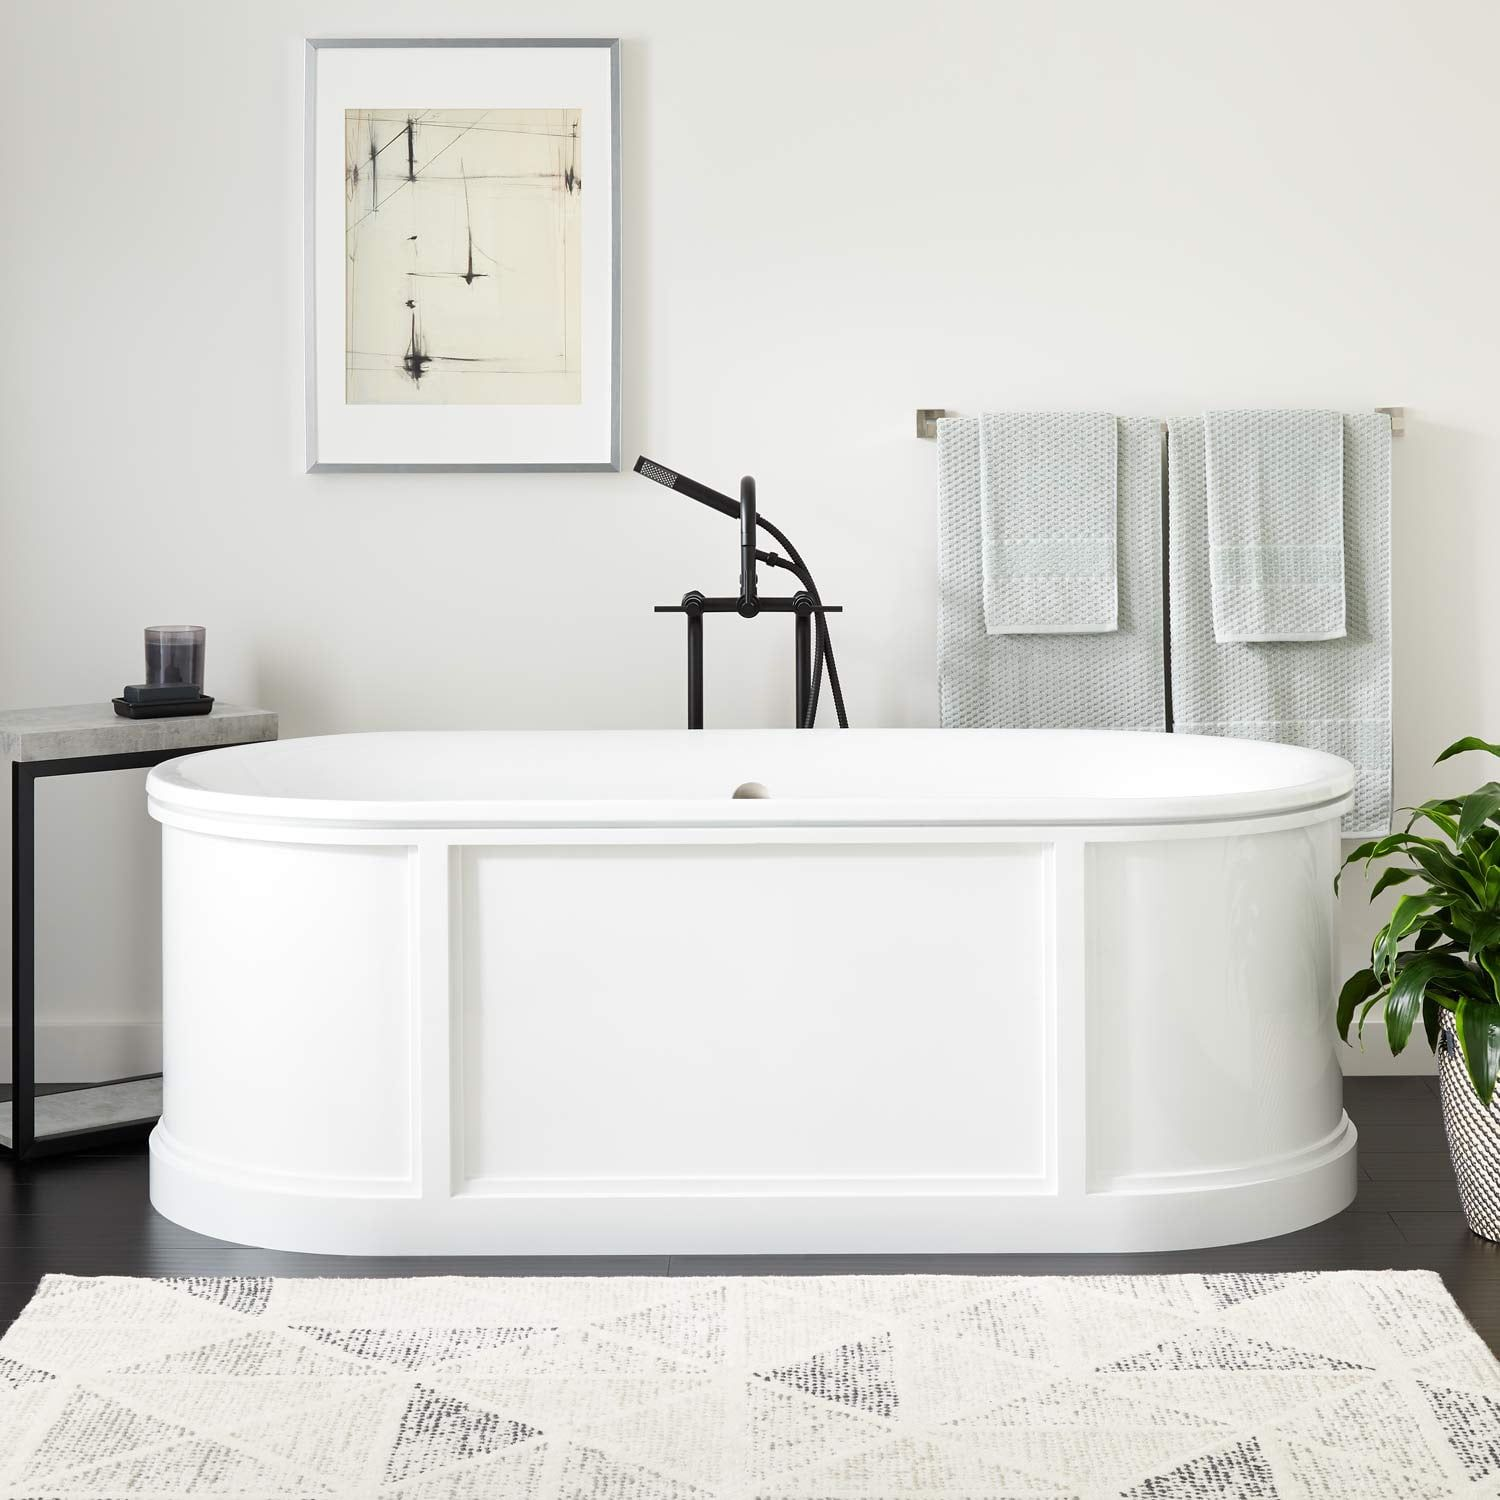 70 Louis Cast Iron Skirted Tub White In 2019 Tub Cast Iron